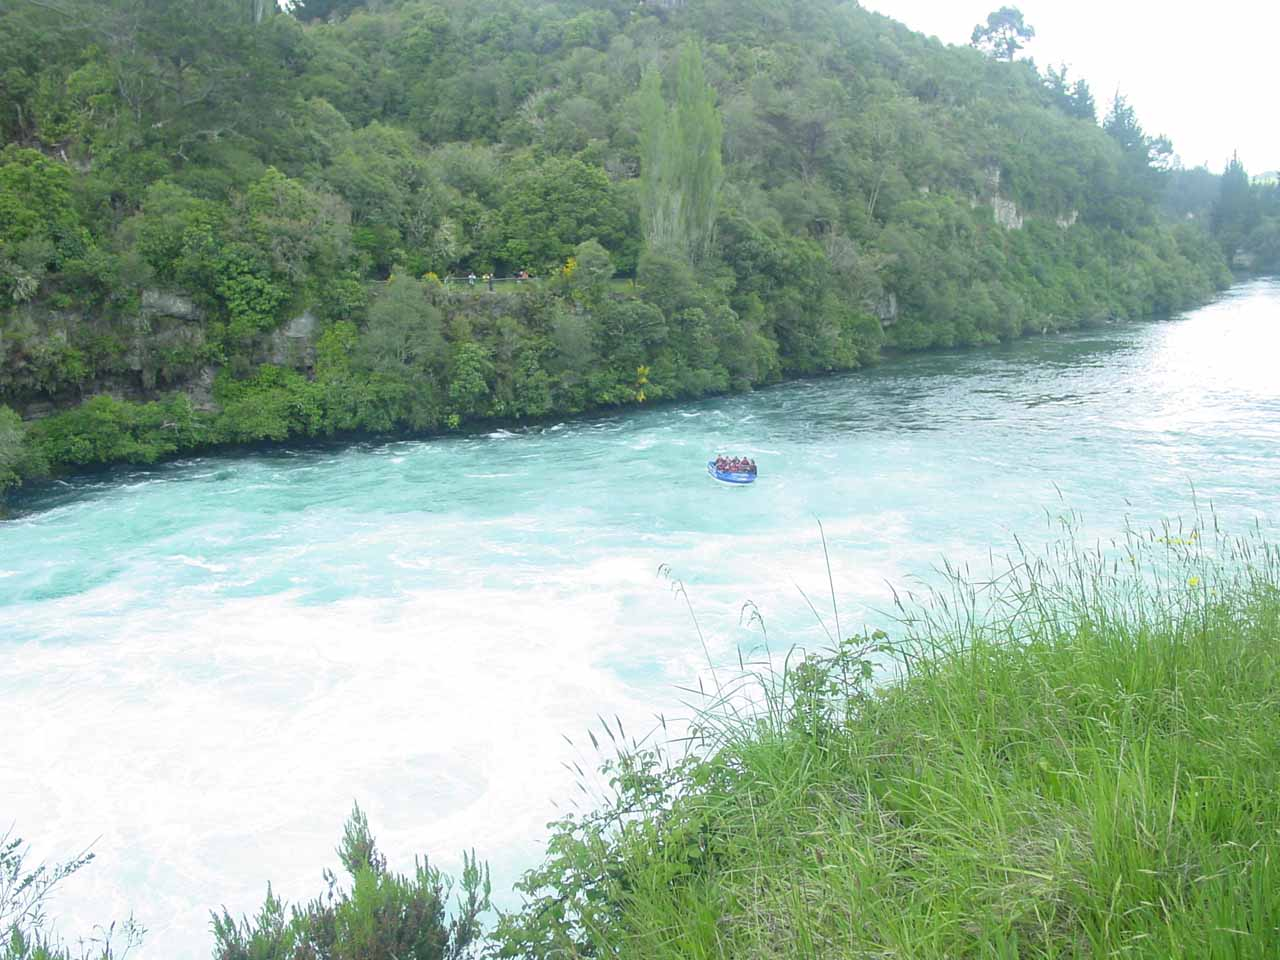 Looking downstream from Huka Falls towards a jet boat tour that started to enter the extensive whitewater caused by the waterfall